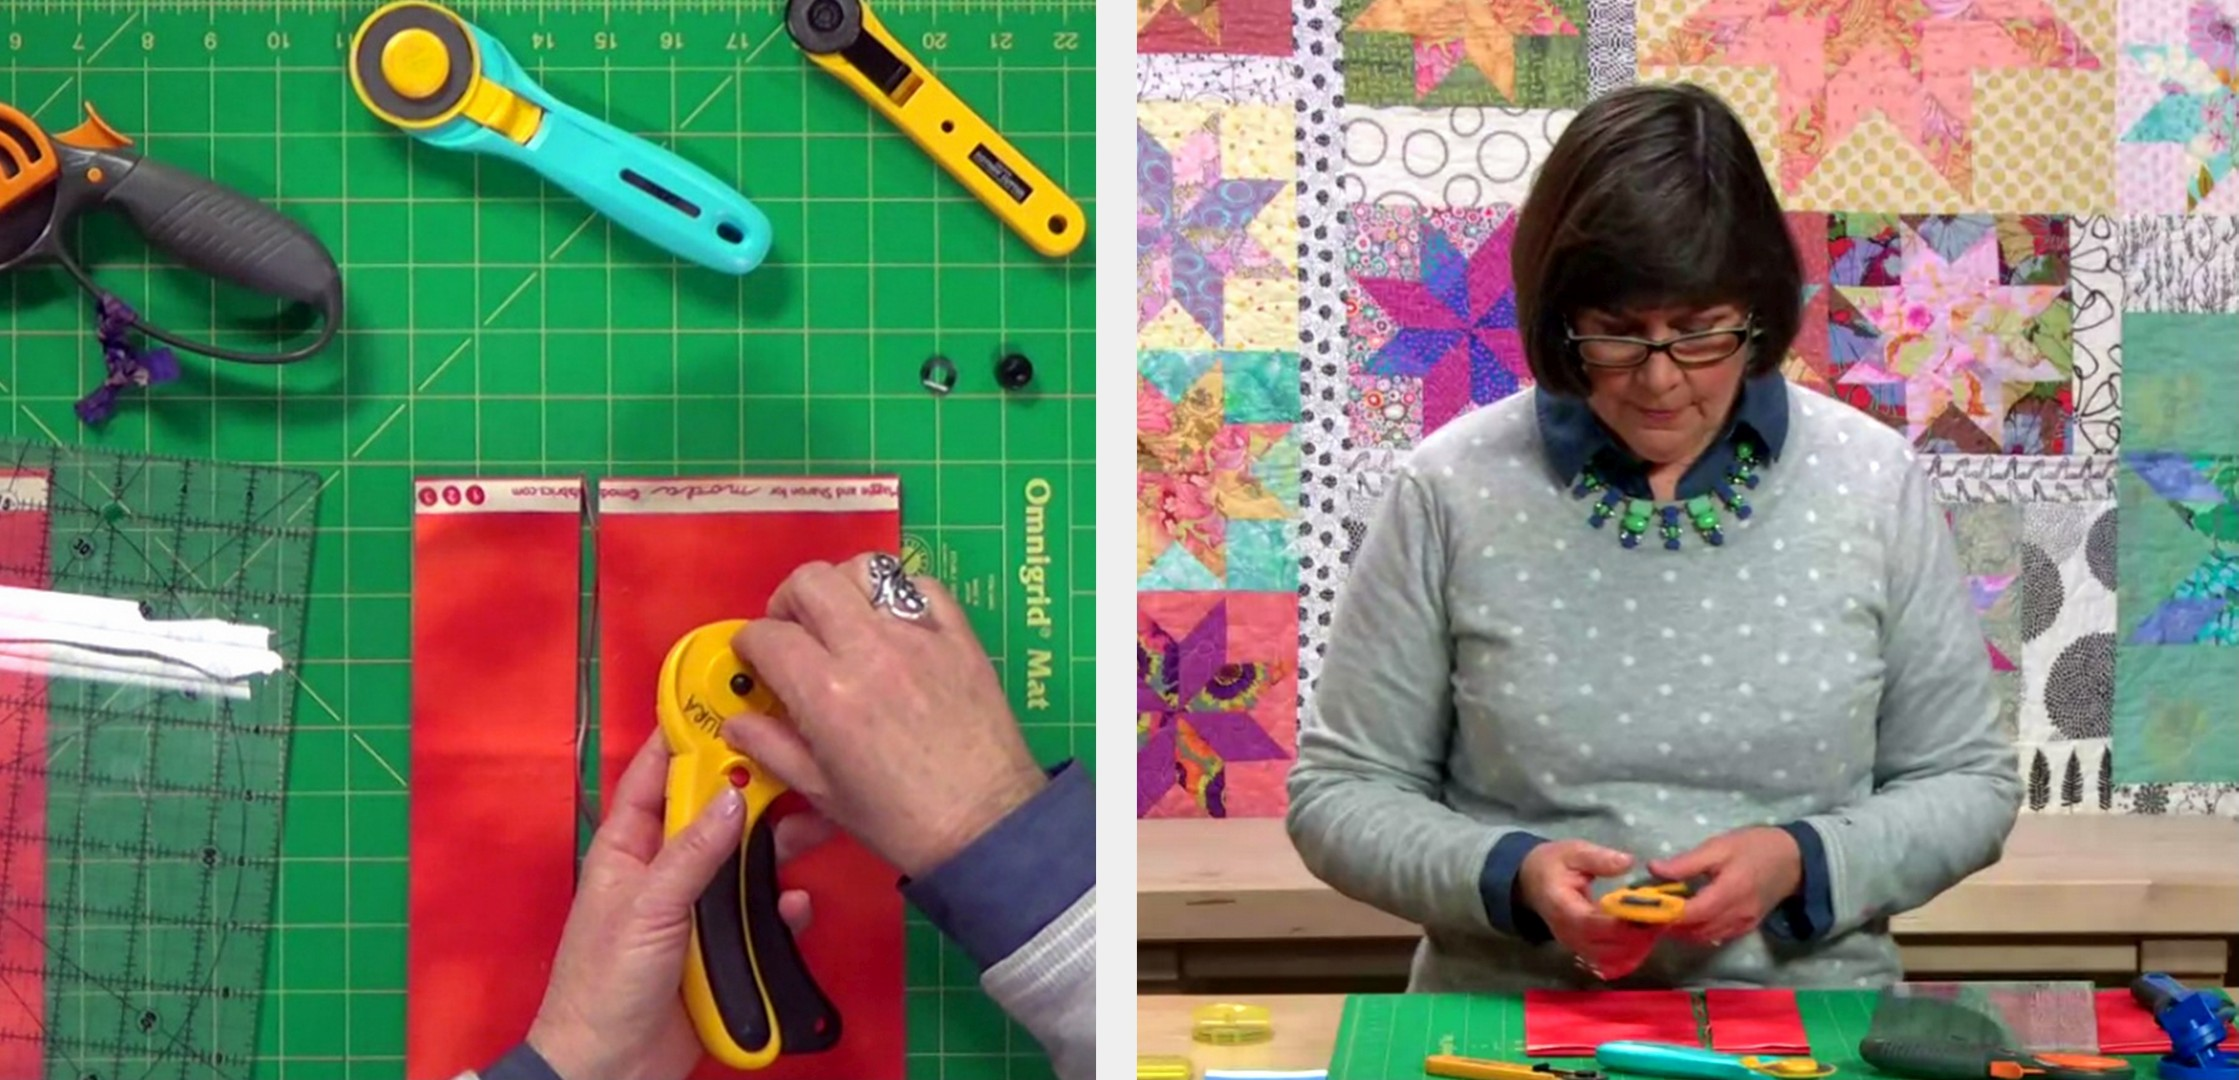 Laura Nownes Troubleshooting a Rotary Cutter